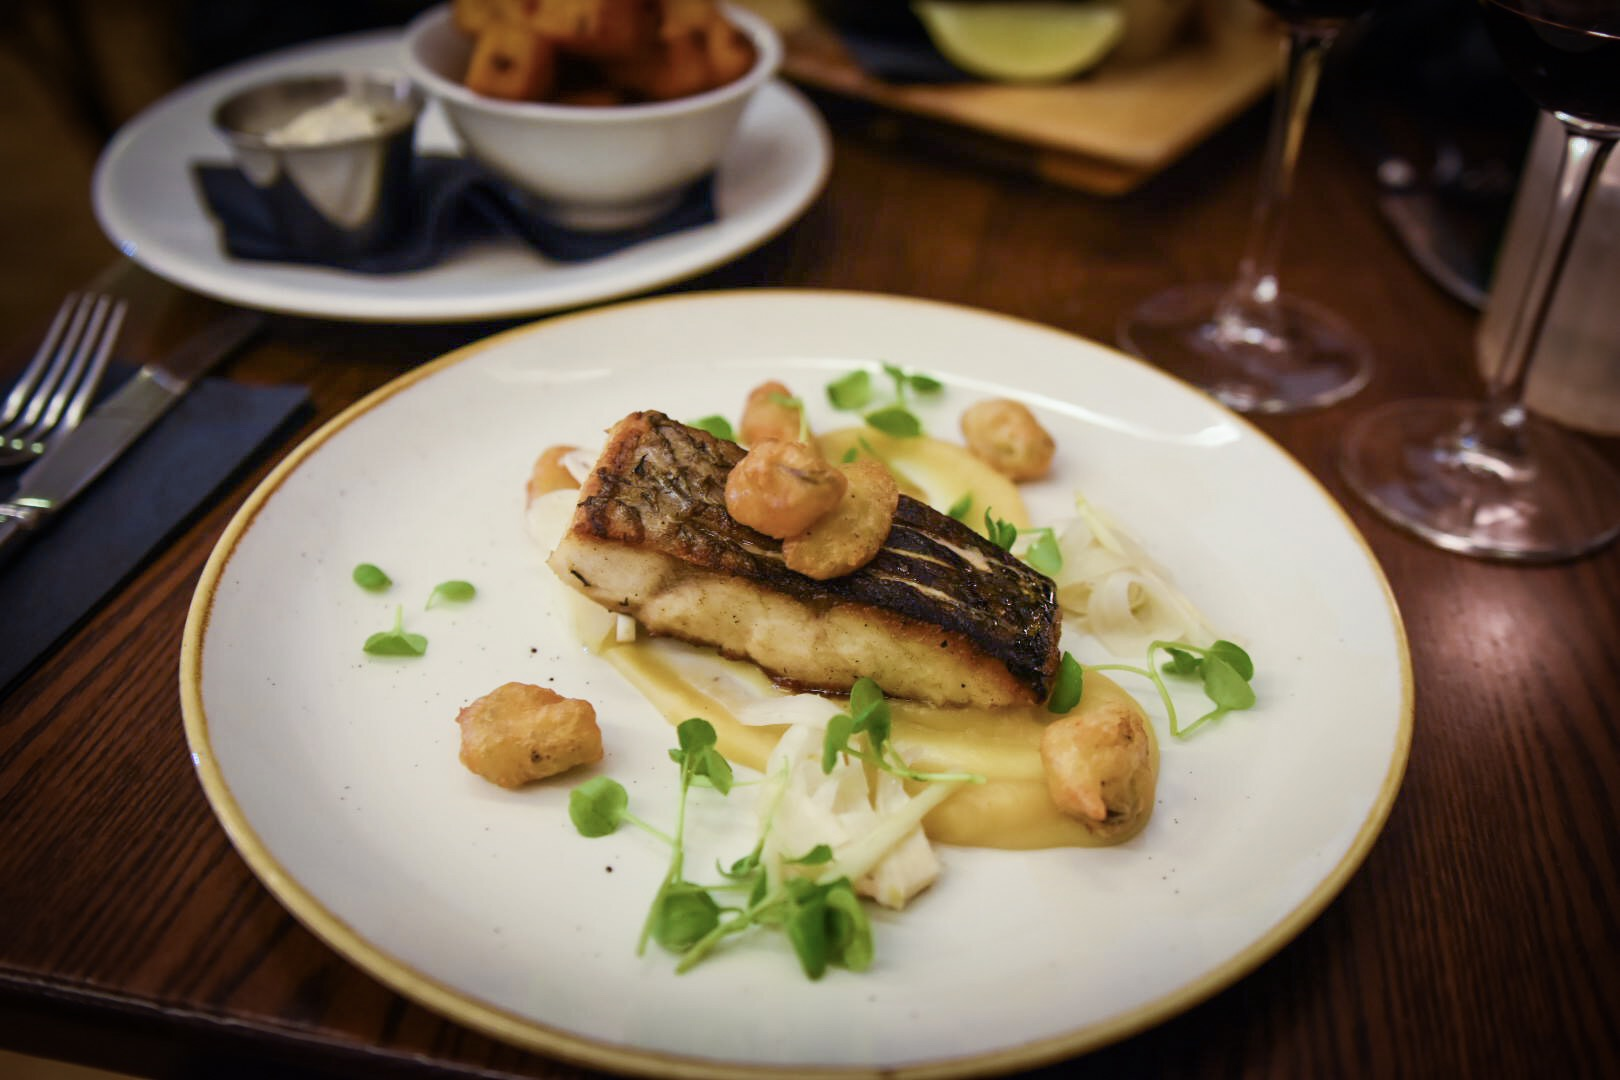 Stone Bass with Tempura Mussels